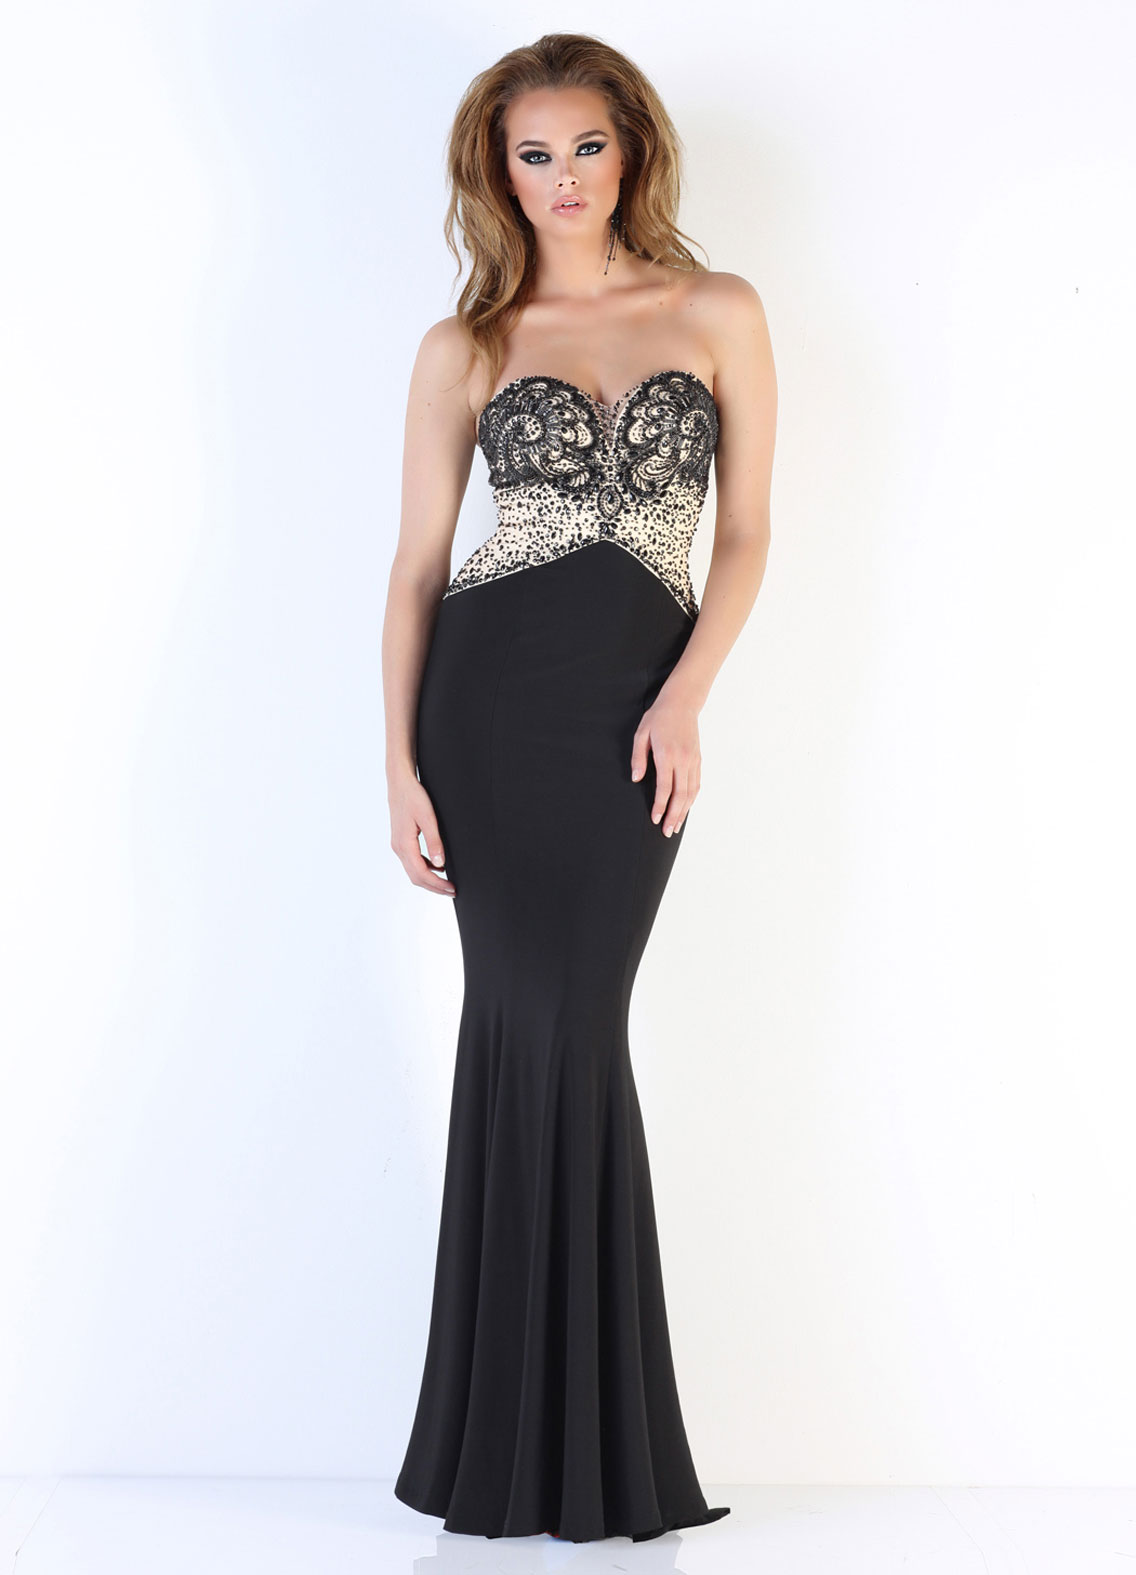 Prom Gowns by Xcite Prom | dresses | Pinterest | Shops, Wedding ...